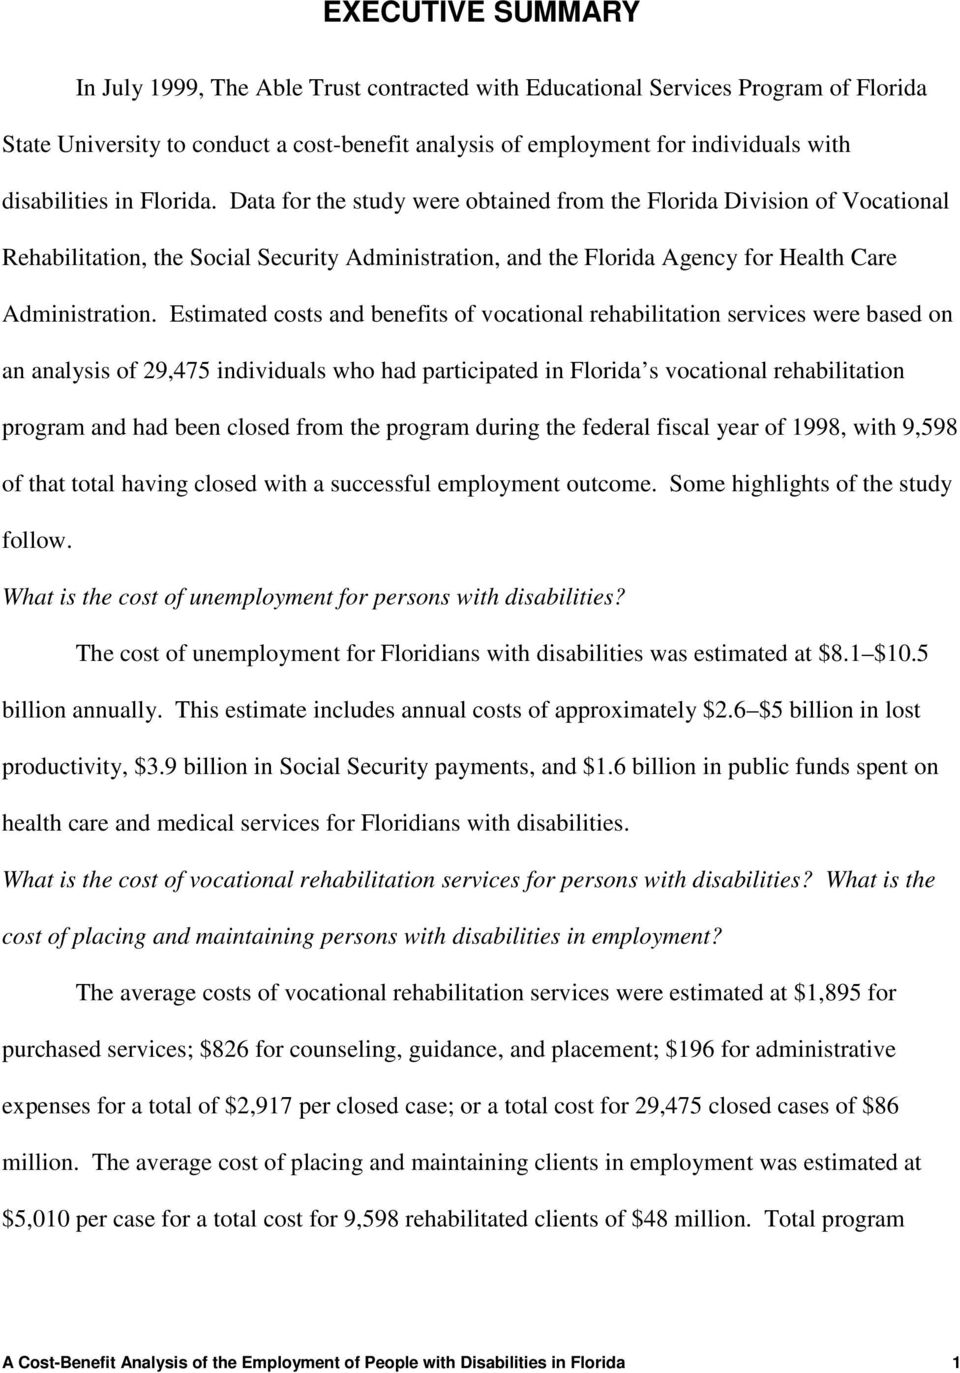 Data for the study were obtained from the Florida Division of Vocational Rehabilitation, the Social Security Administration, and the Florida Agency for Health Care Administration.